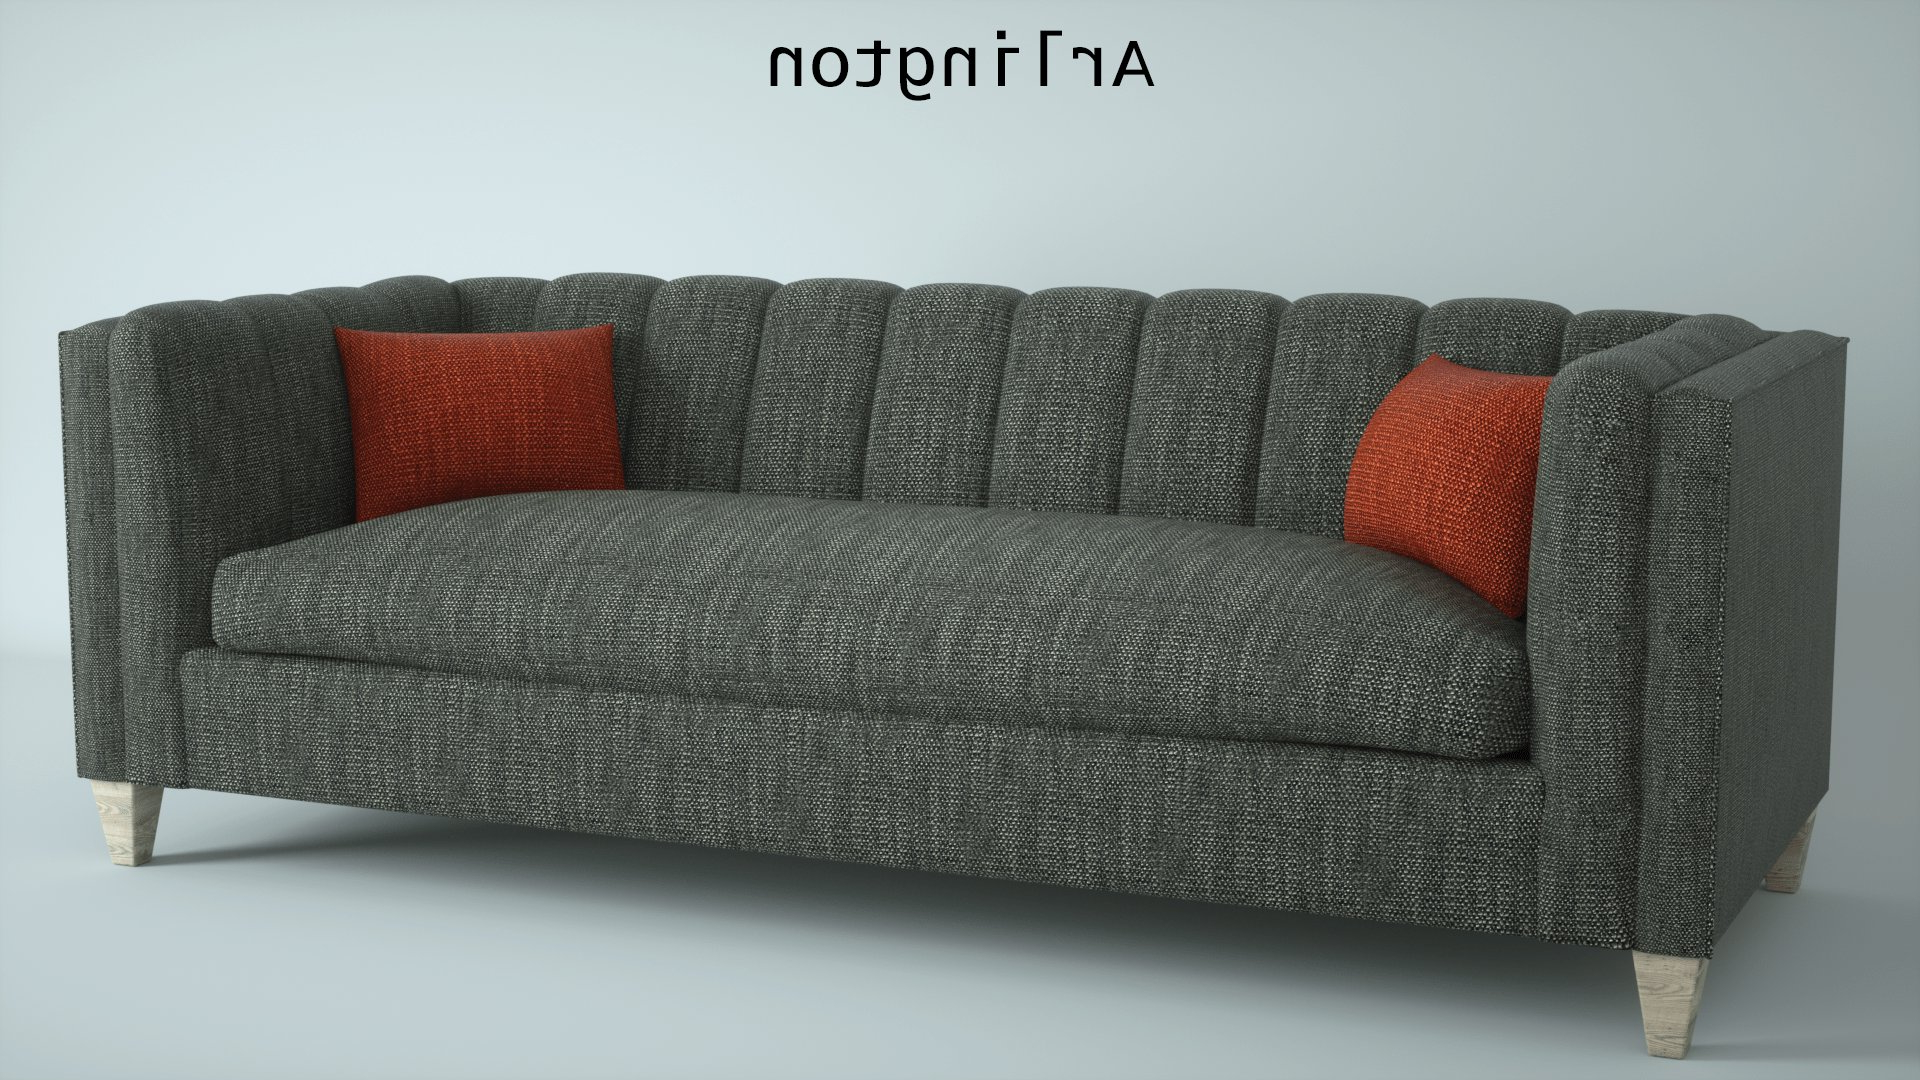 2 Piece Sectionals With Chaise Beautiful Sofas Sugar Hill In Trendy Aquarius Light Grey 2 Piece Sectionals With Raf Chaise (View 17 of 20)